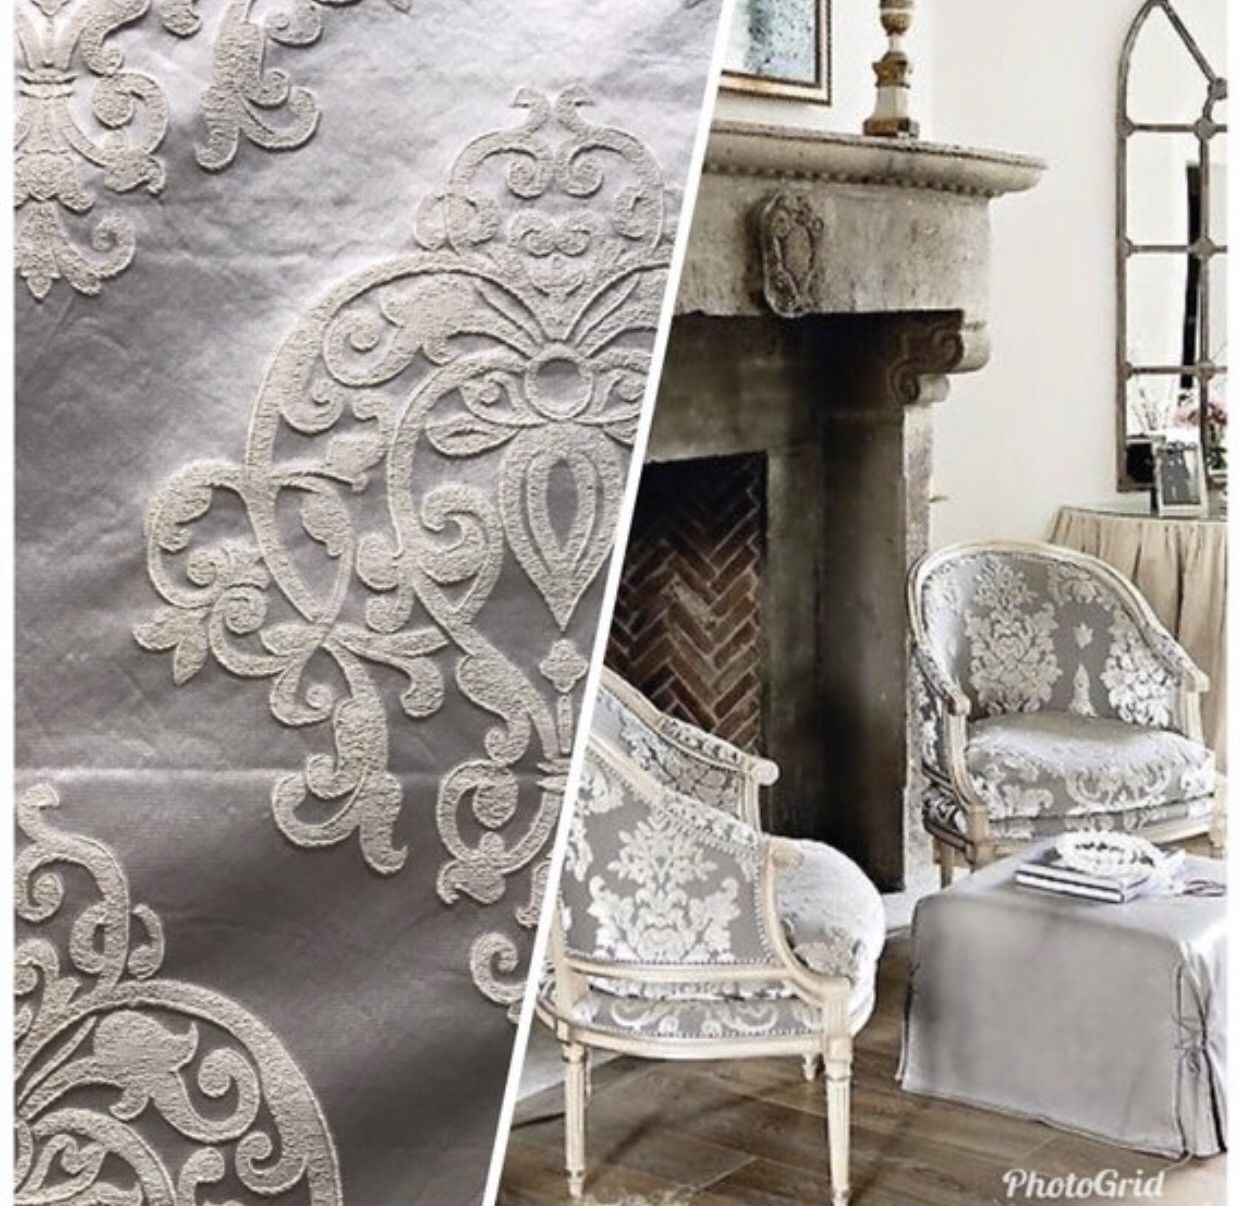 1 Yard Remnant- Designer Brocade Satin Damask Upholstery Fabric - Ivory Grey - Fancy Styles Fabric Pierre Frey Lee Jofa